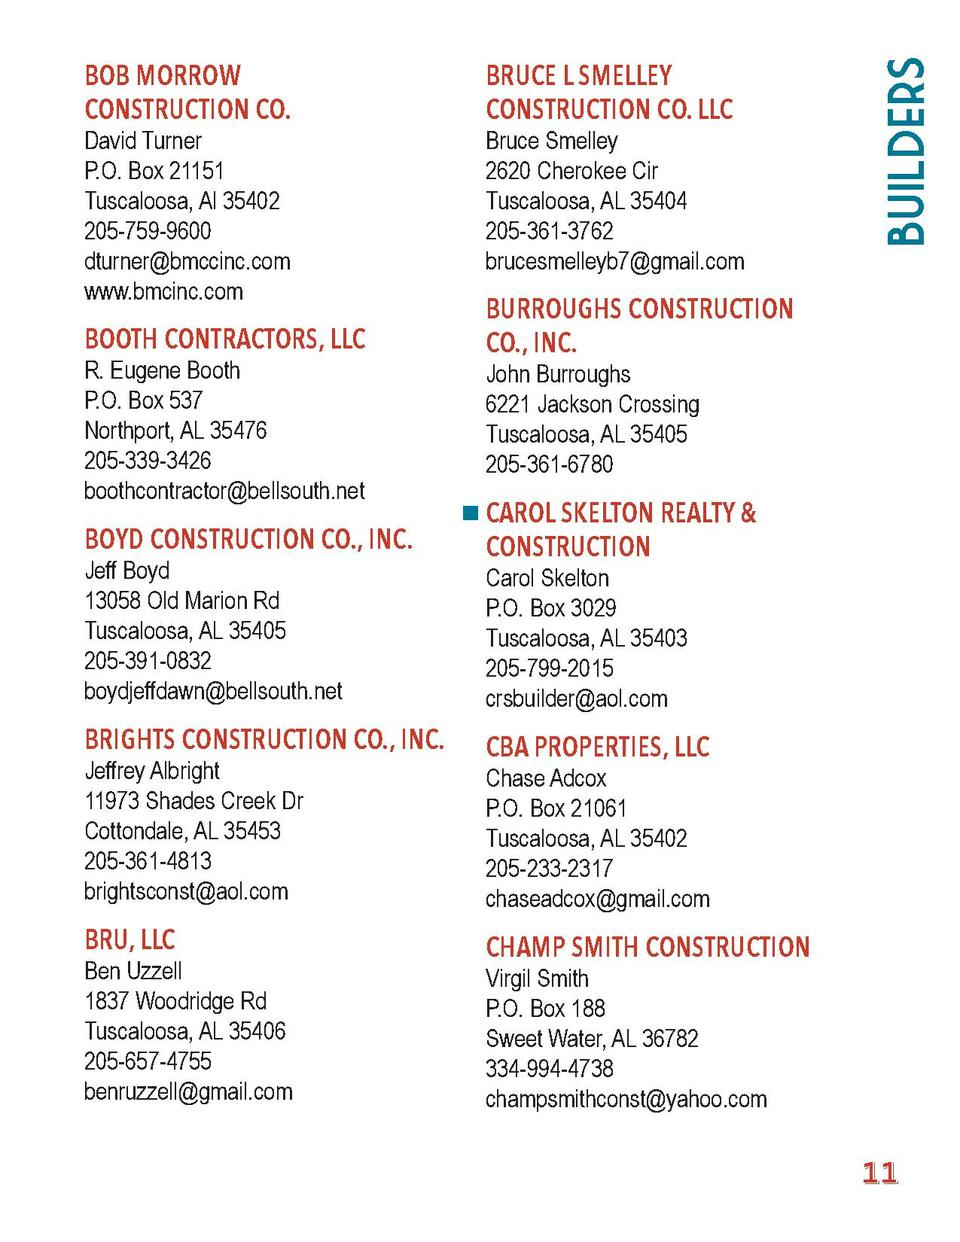 BRUCE L SMELLEY CONSTRUCTION CO. LLC  BOOTH CONTRACTORS, LLC  Builders  BOB MORROW CONSTRUCTION CO.  BURROUGHS CONSTRUCTIO...